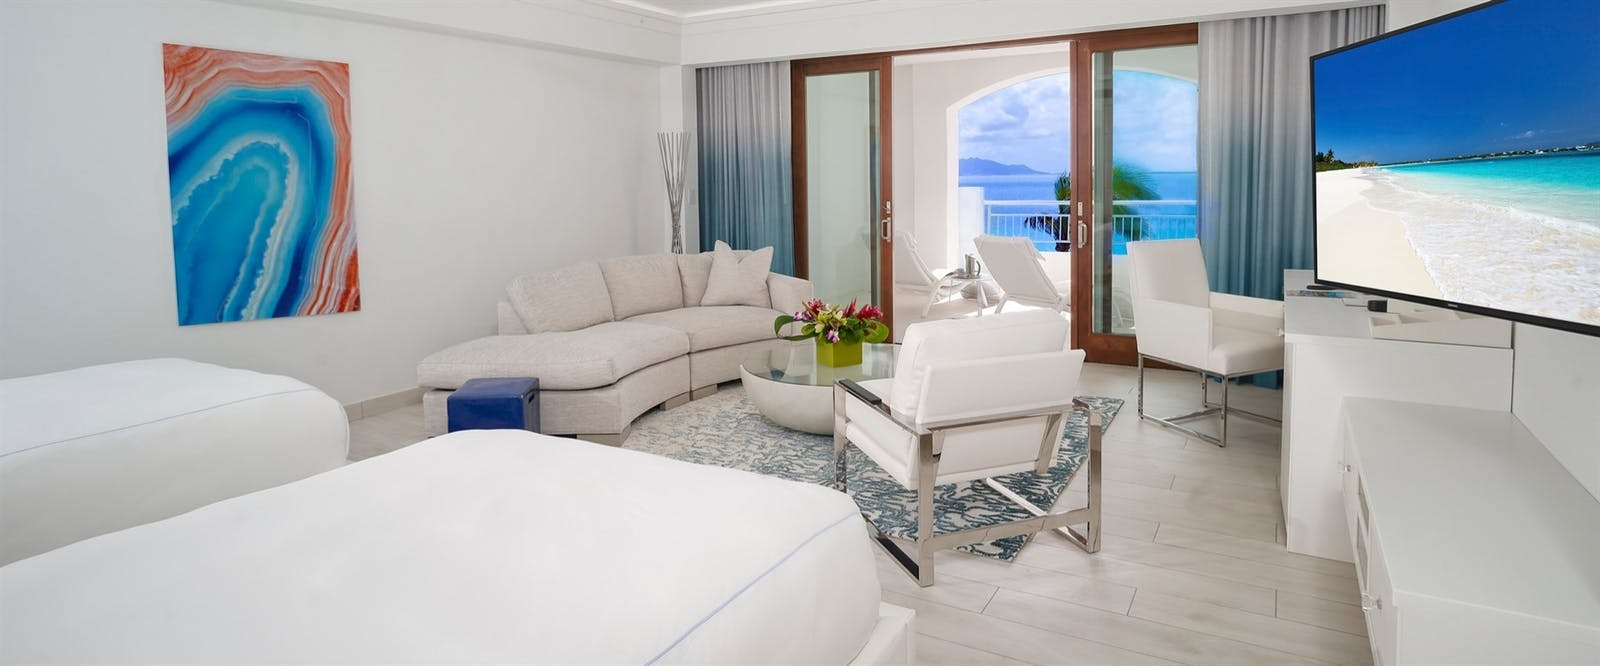 Deluxe Beachfront Junior Suite at CuisinArt Golf Resort & Spa, Anguilla